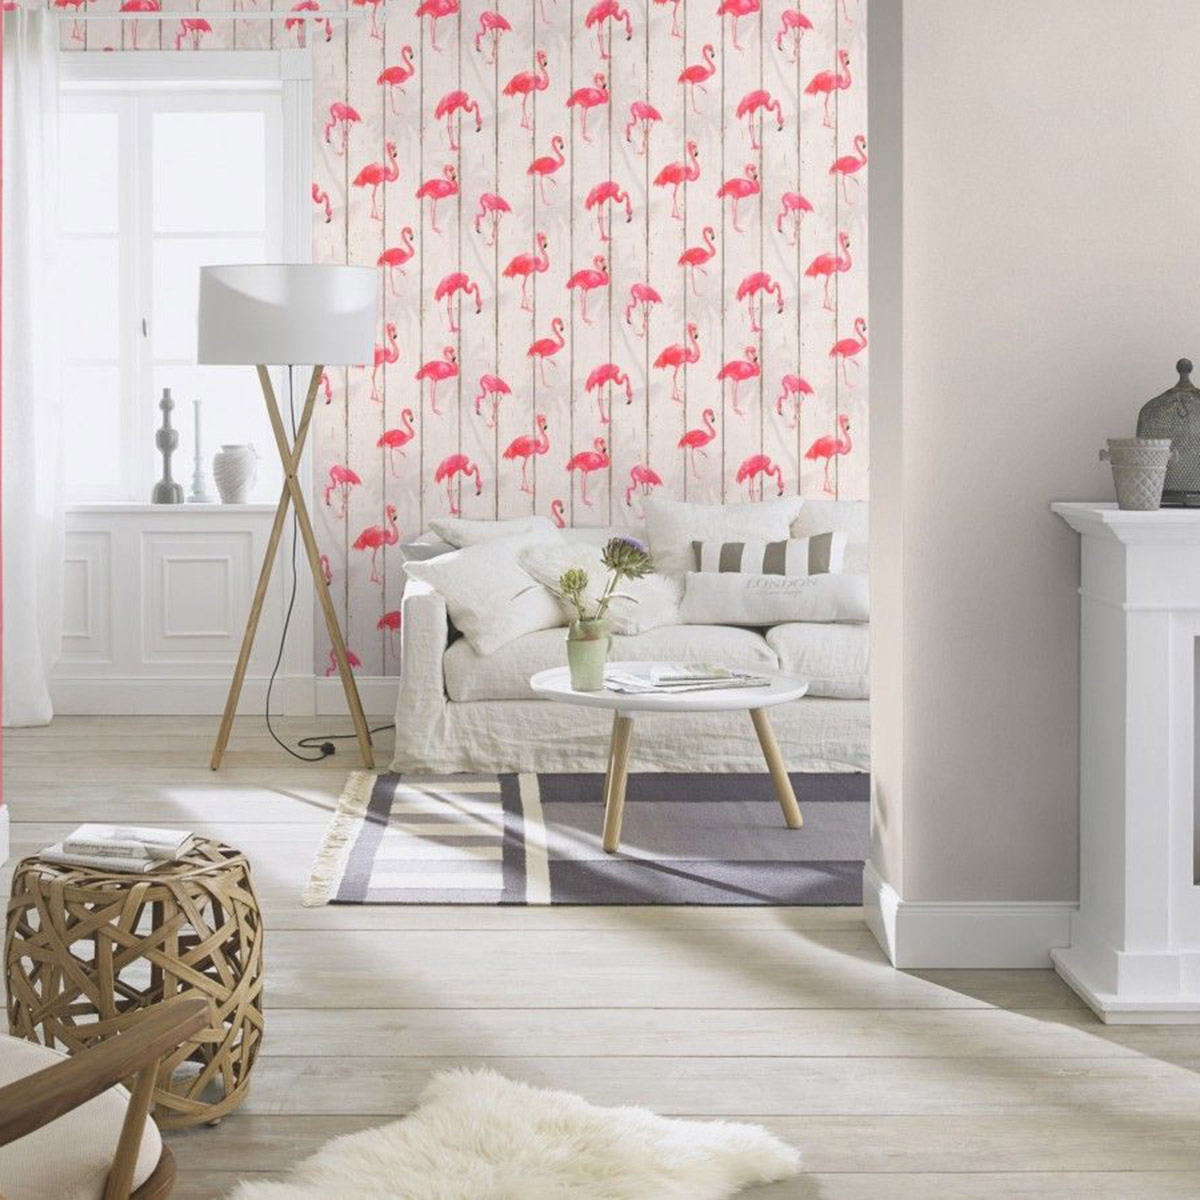 Barbara Becker Flamingo Wallpaper Natural White 479720